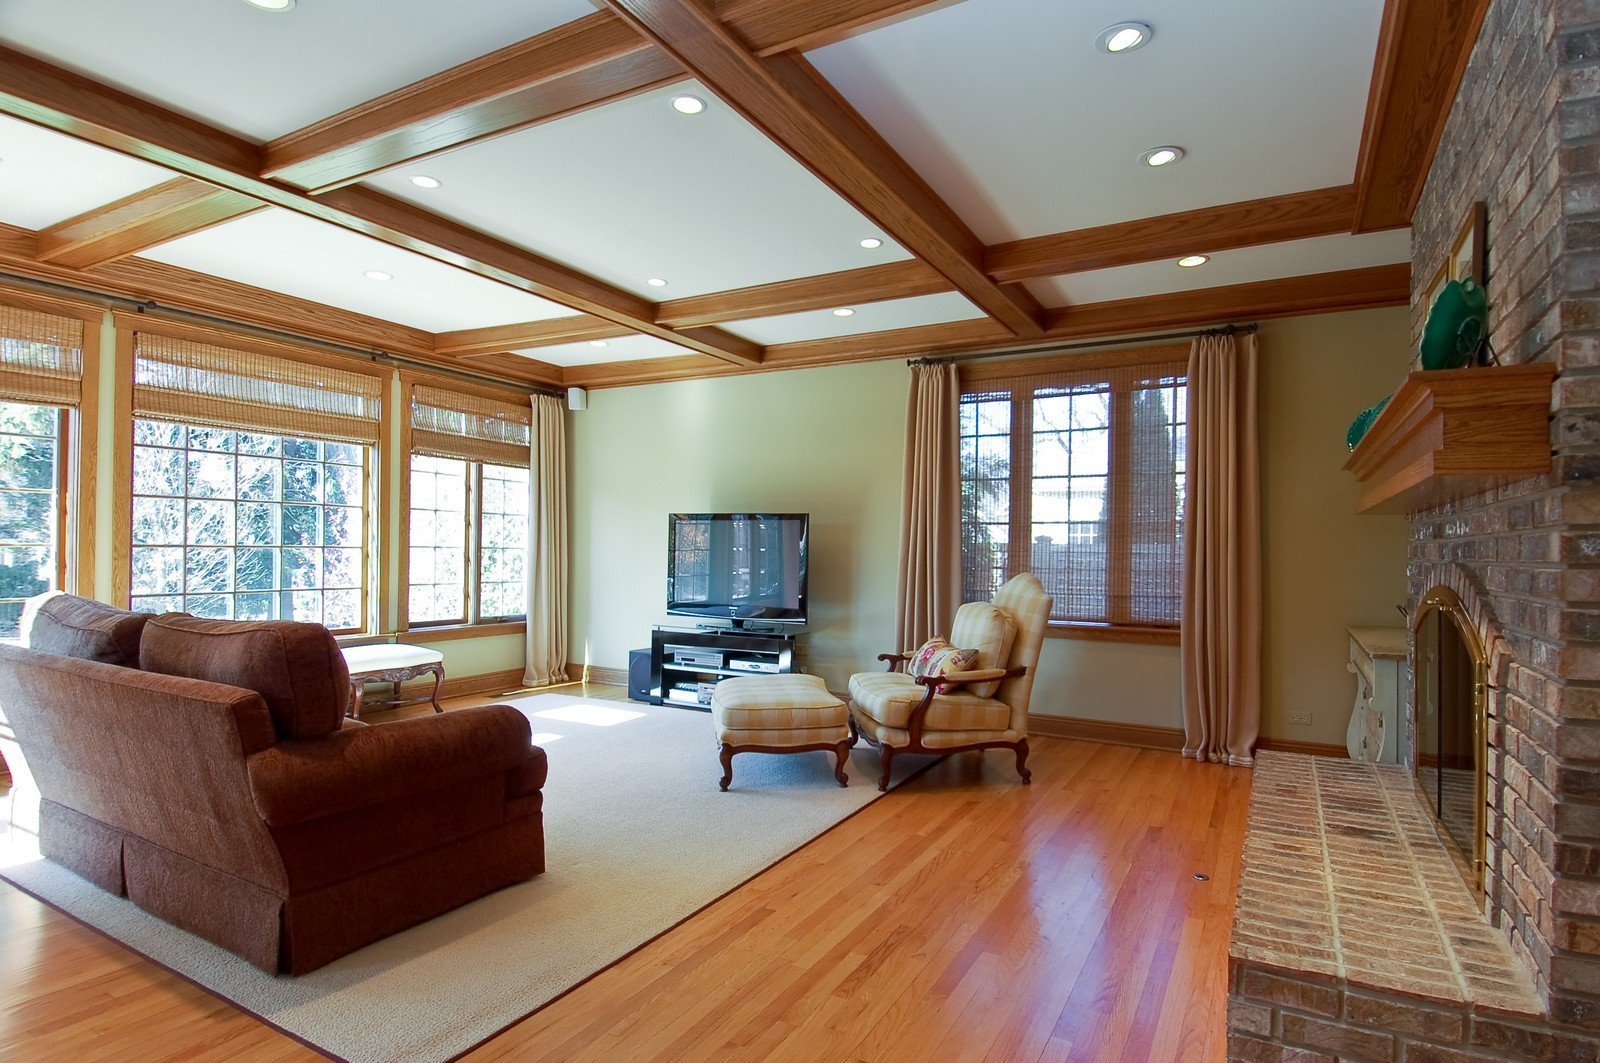 Real Estate Photography - 1492 Lloyd, Wheaton, IL, 60189 - Family Room view 2